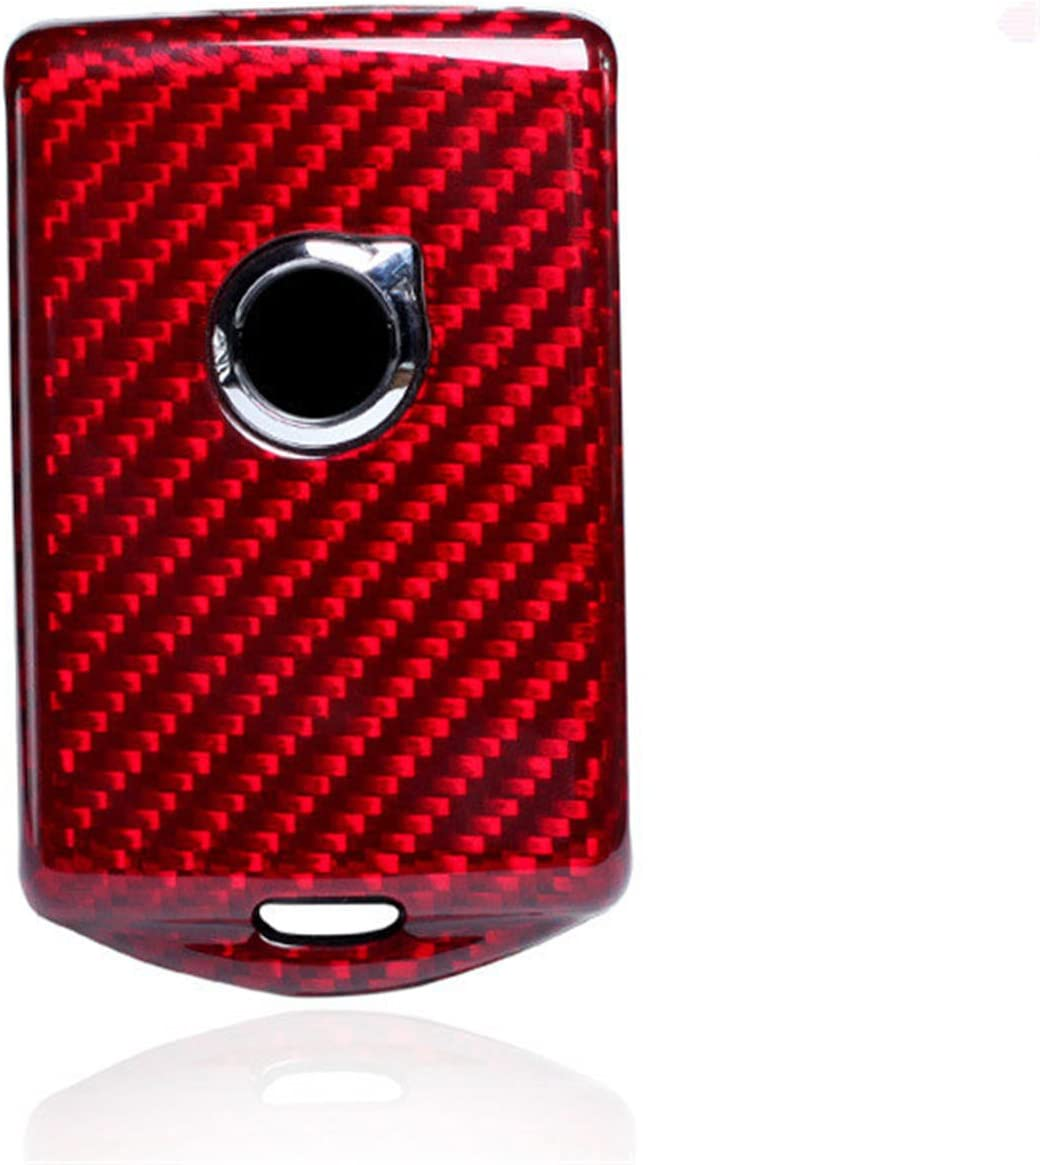 100/% Carbon Fiber Case For Volvo Key Fob Genuine Carbon Fiber Cover For Volvo XC60 2018 Smart Fob Remote Key New Hot Car Key Fob Case Protector For Men Fob Cover Skin For Women Red